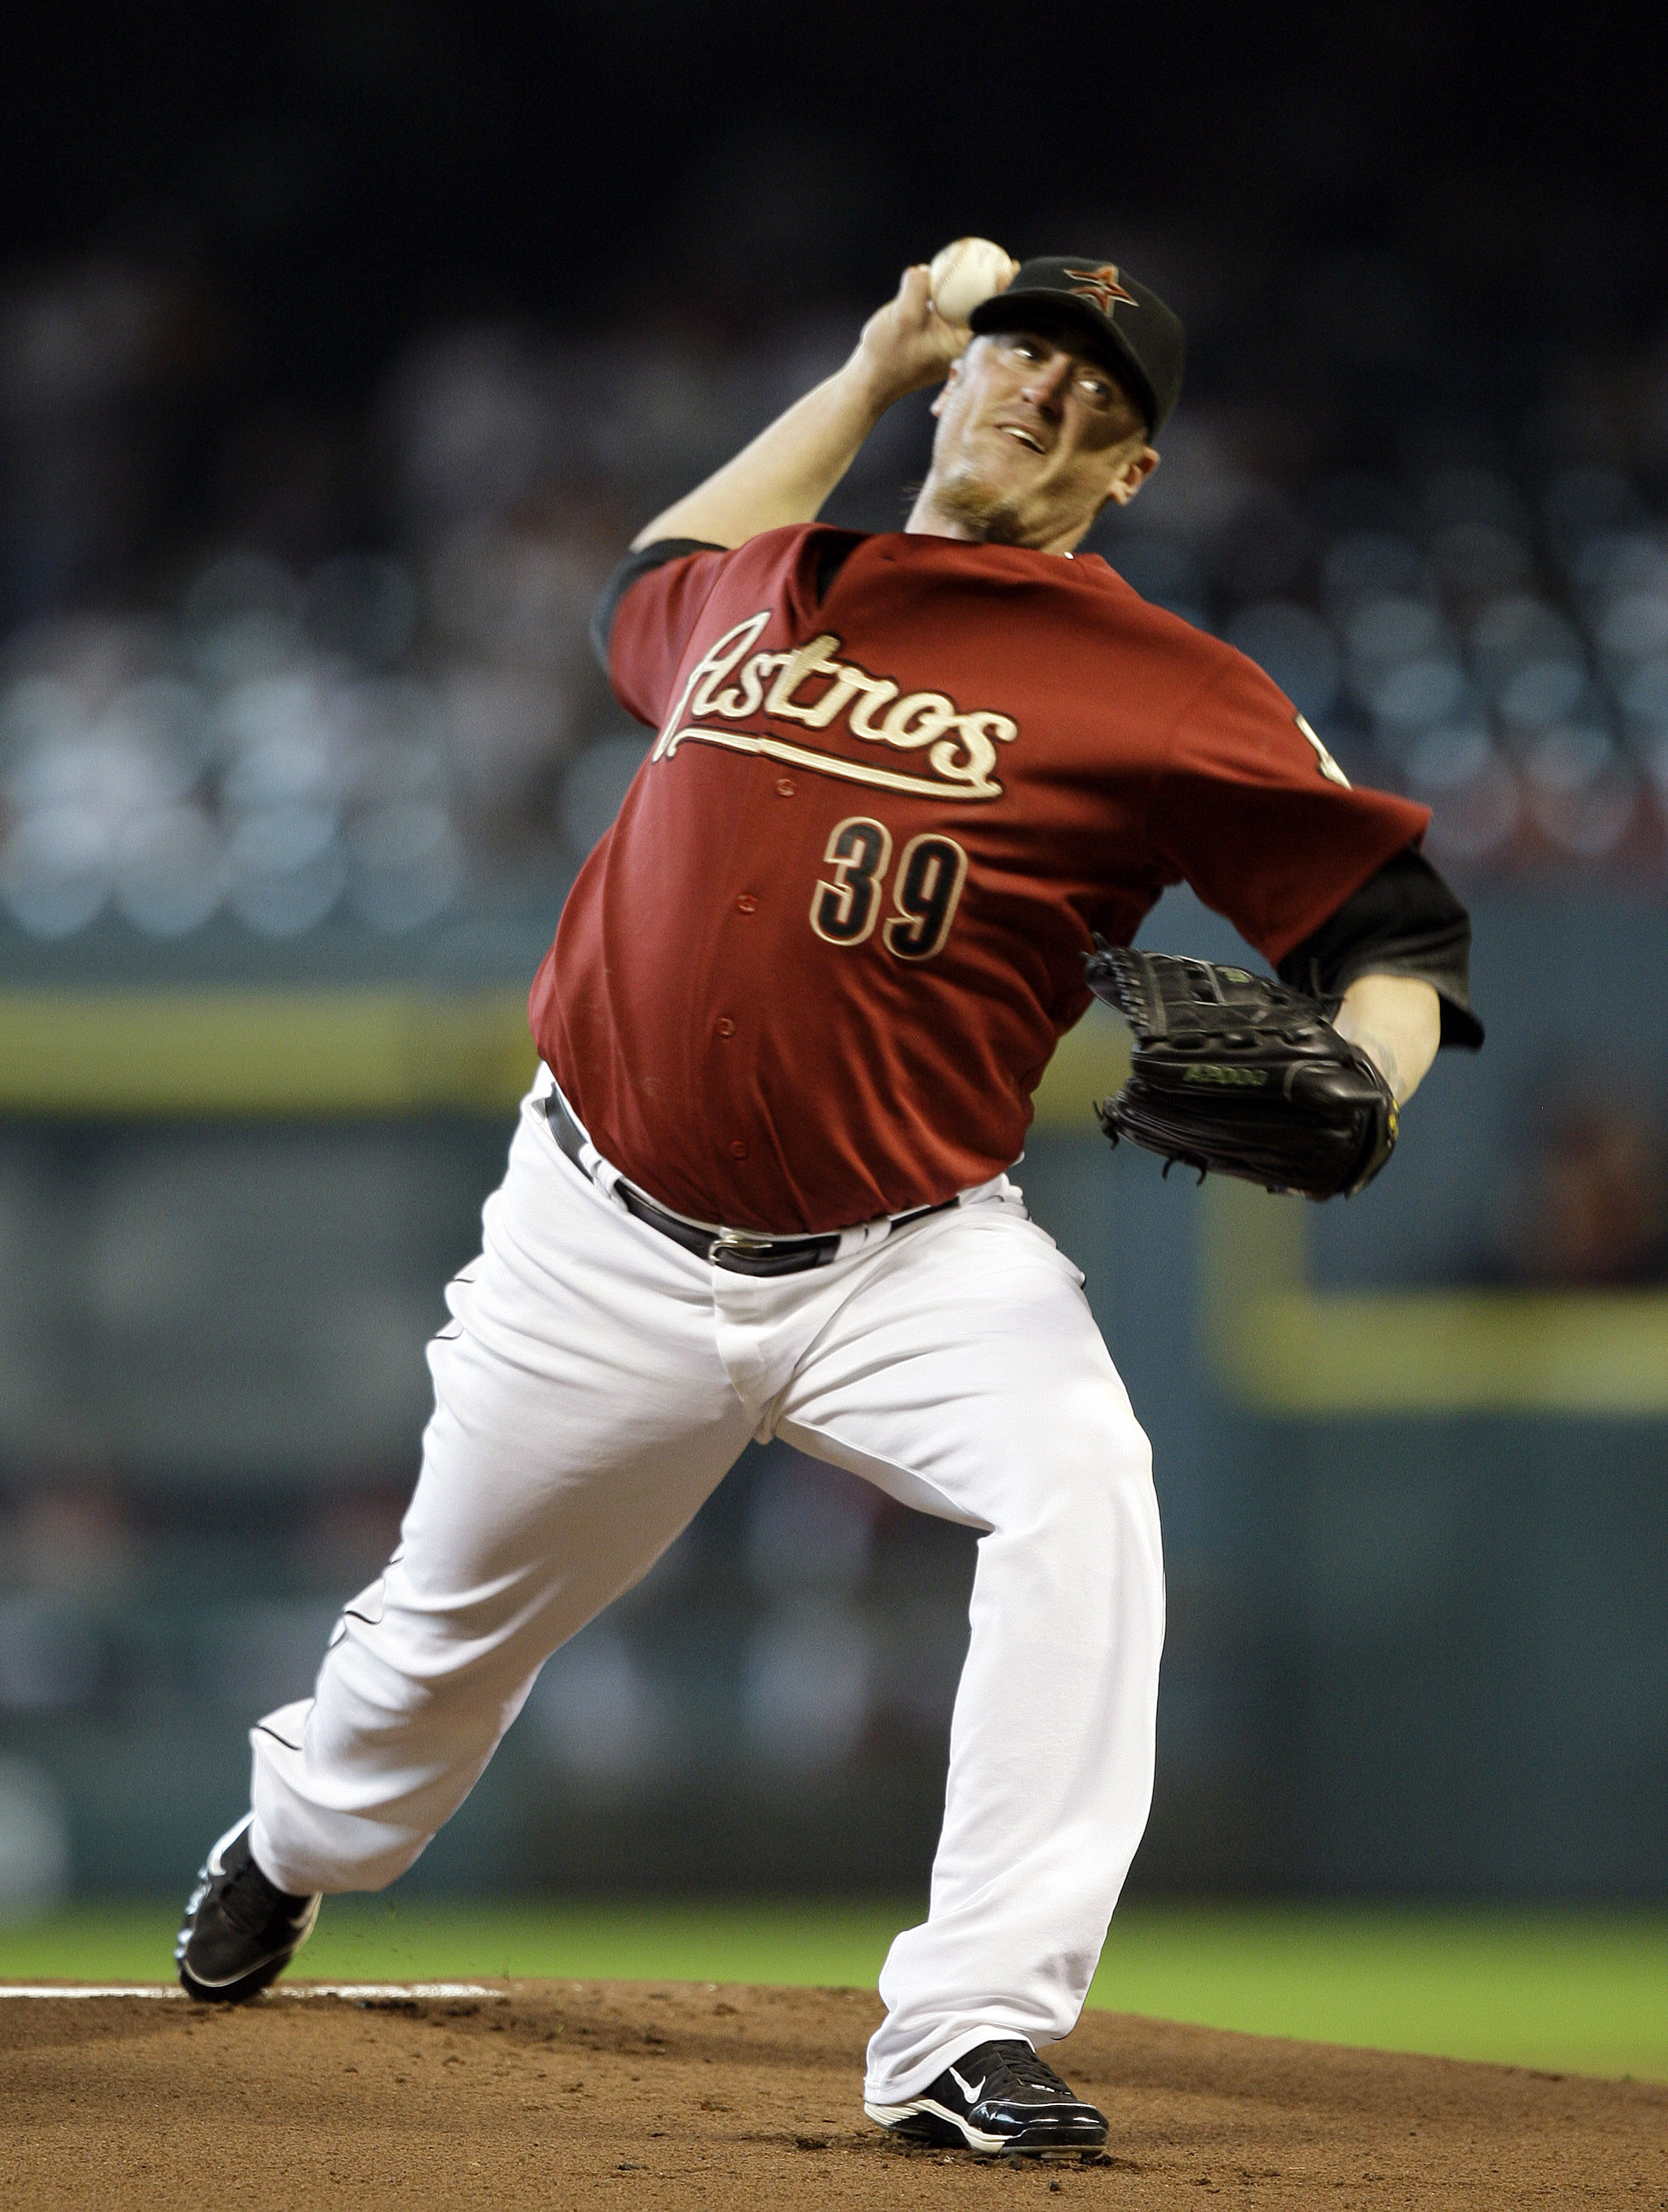 HOUSTON - SEPTEMBER 19:  Pitcher Brett Myers #39 of the Houston Astros throws against the Cincinnatti Reds in the first inning at Minute Maid Park on September 19, 2010 in Houston, Texas.  (Photo by Bob Levey/Getty Images)